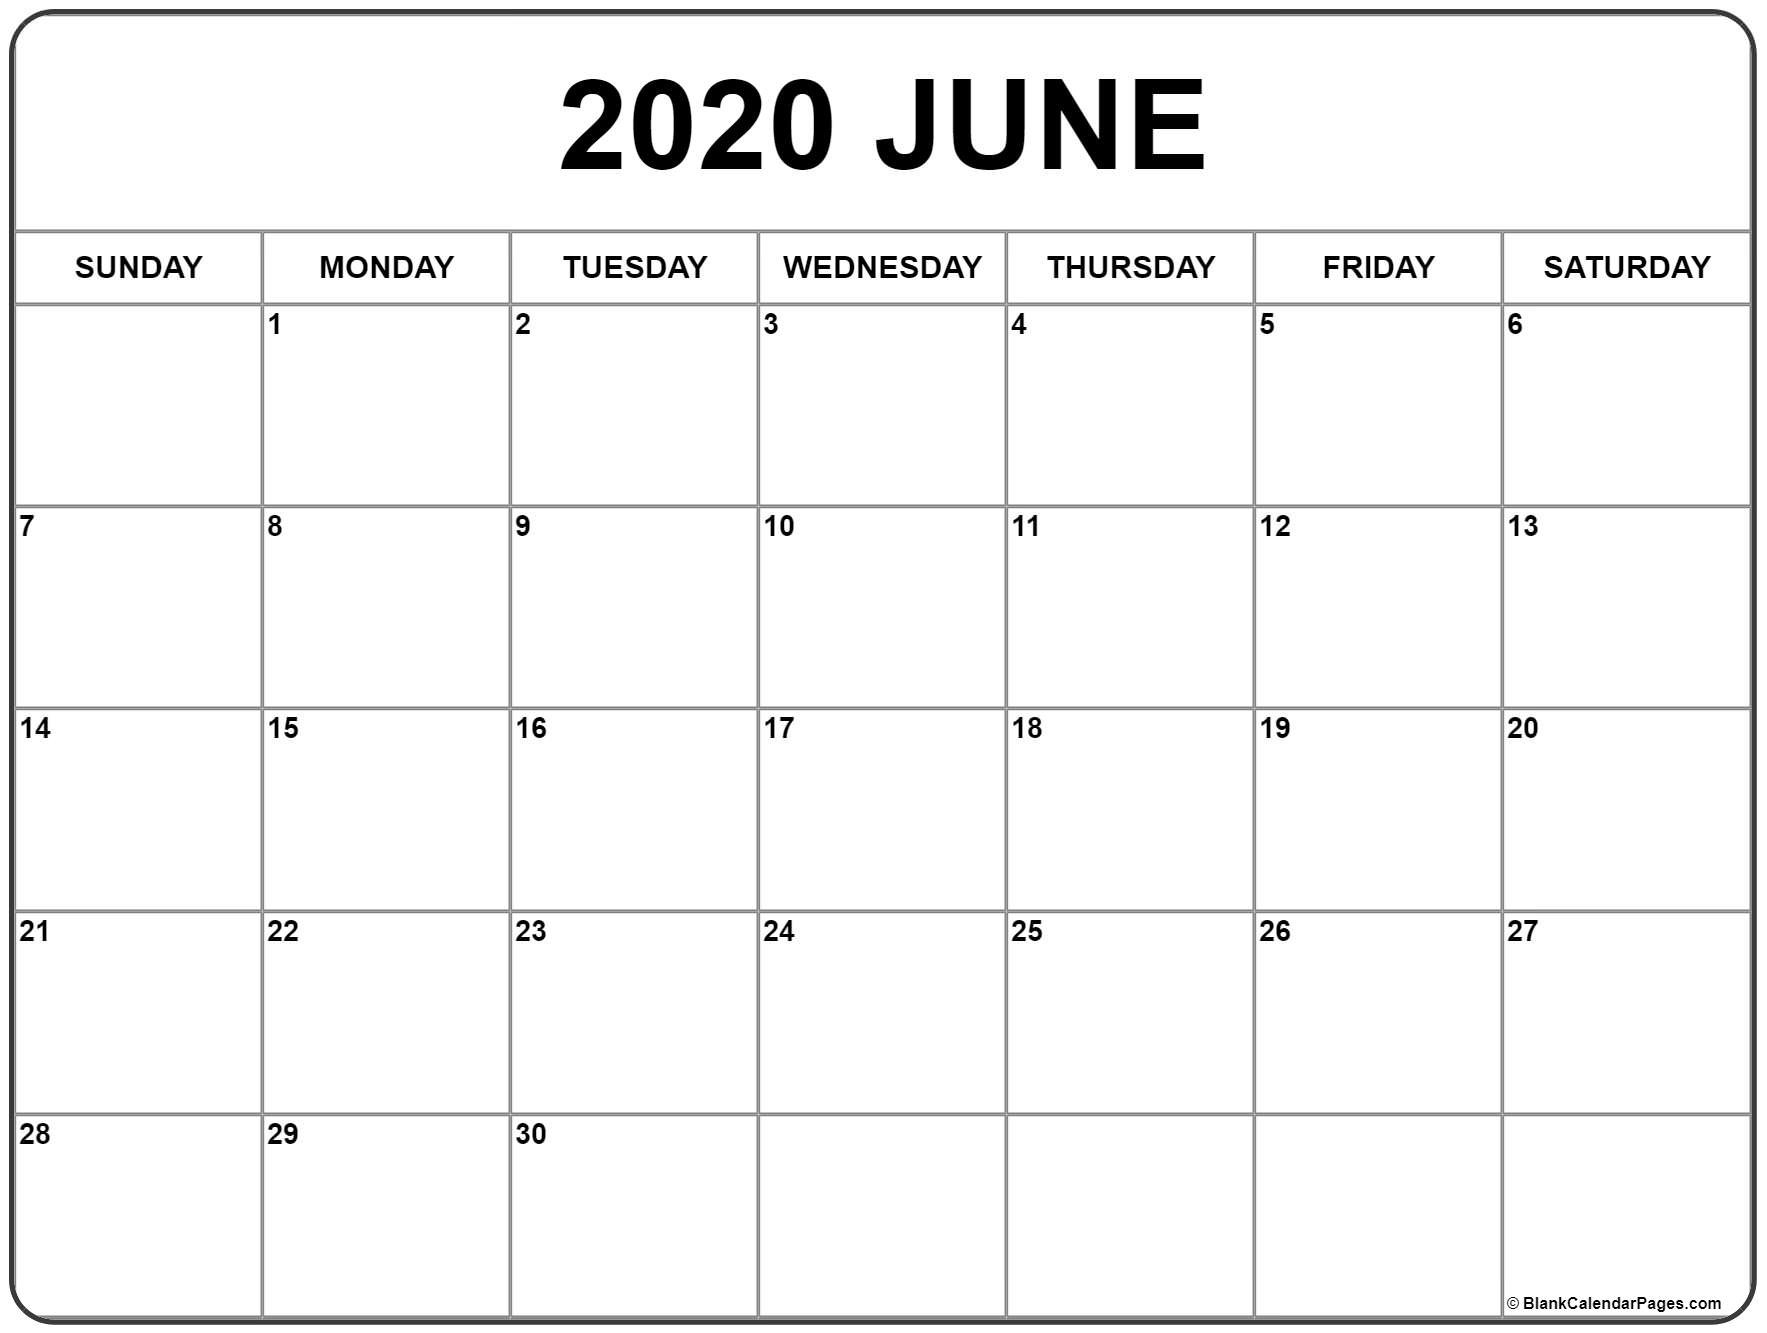 June 2020 Calendar | Free Printable Monthly Calendars How Can I Print Calendar To Fill In